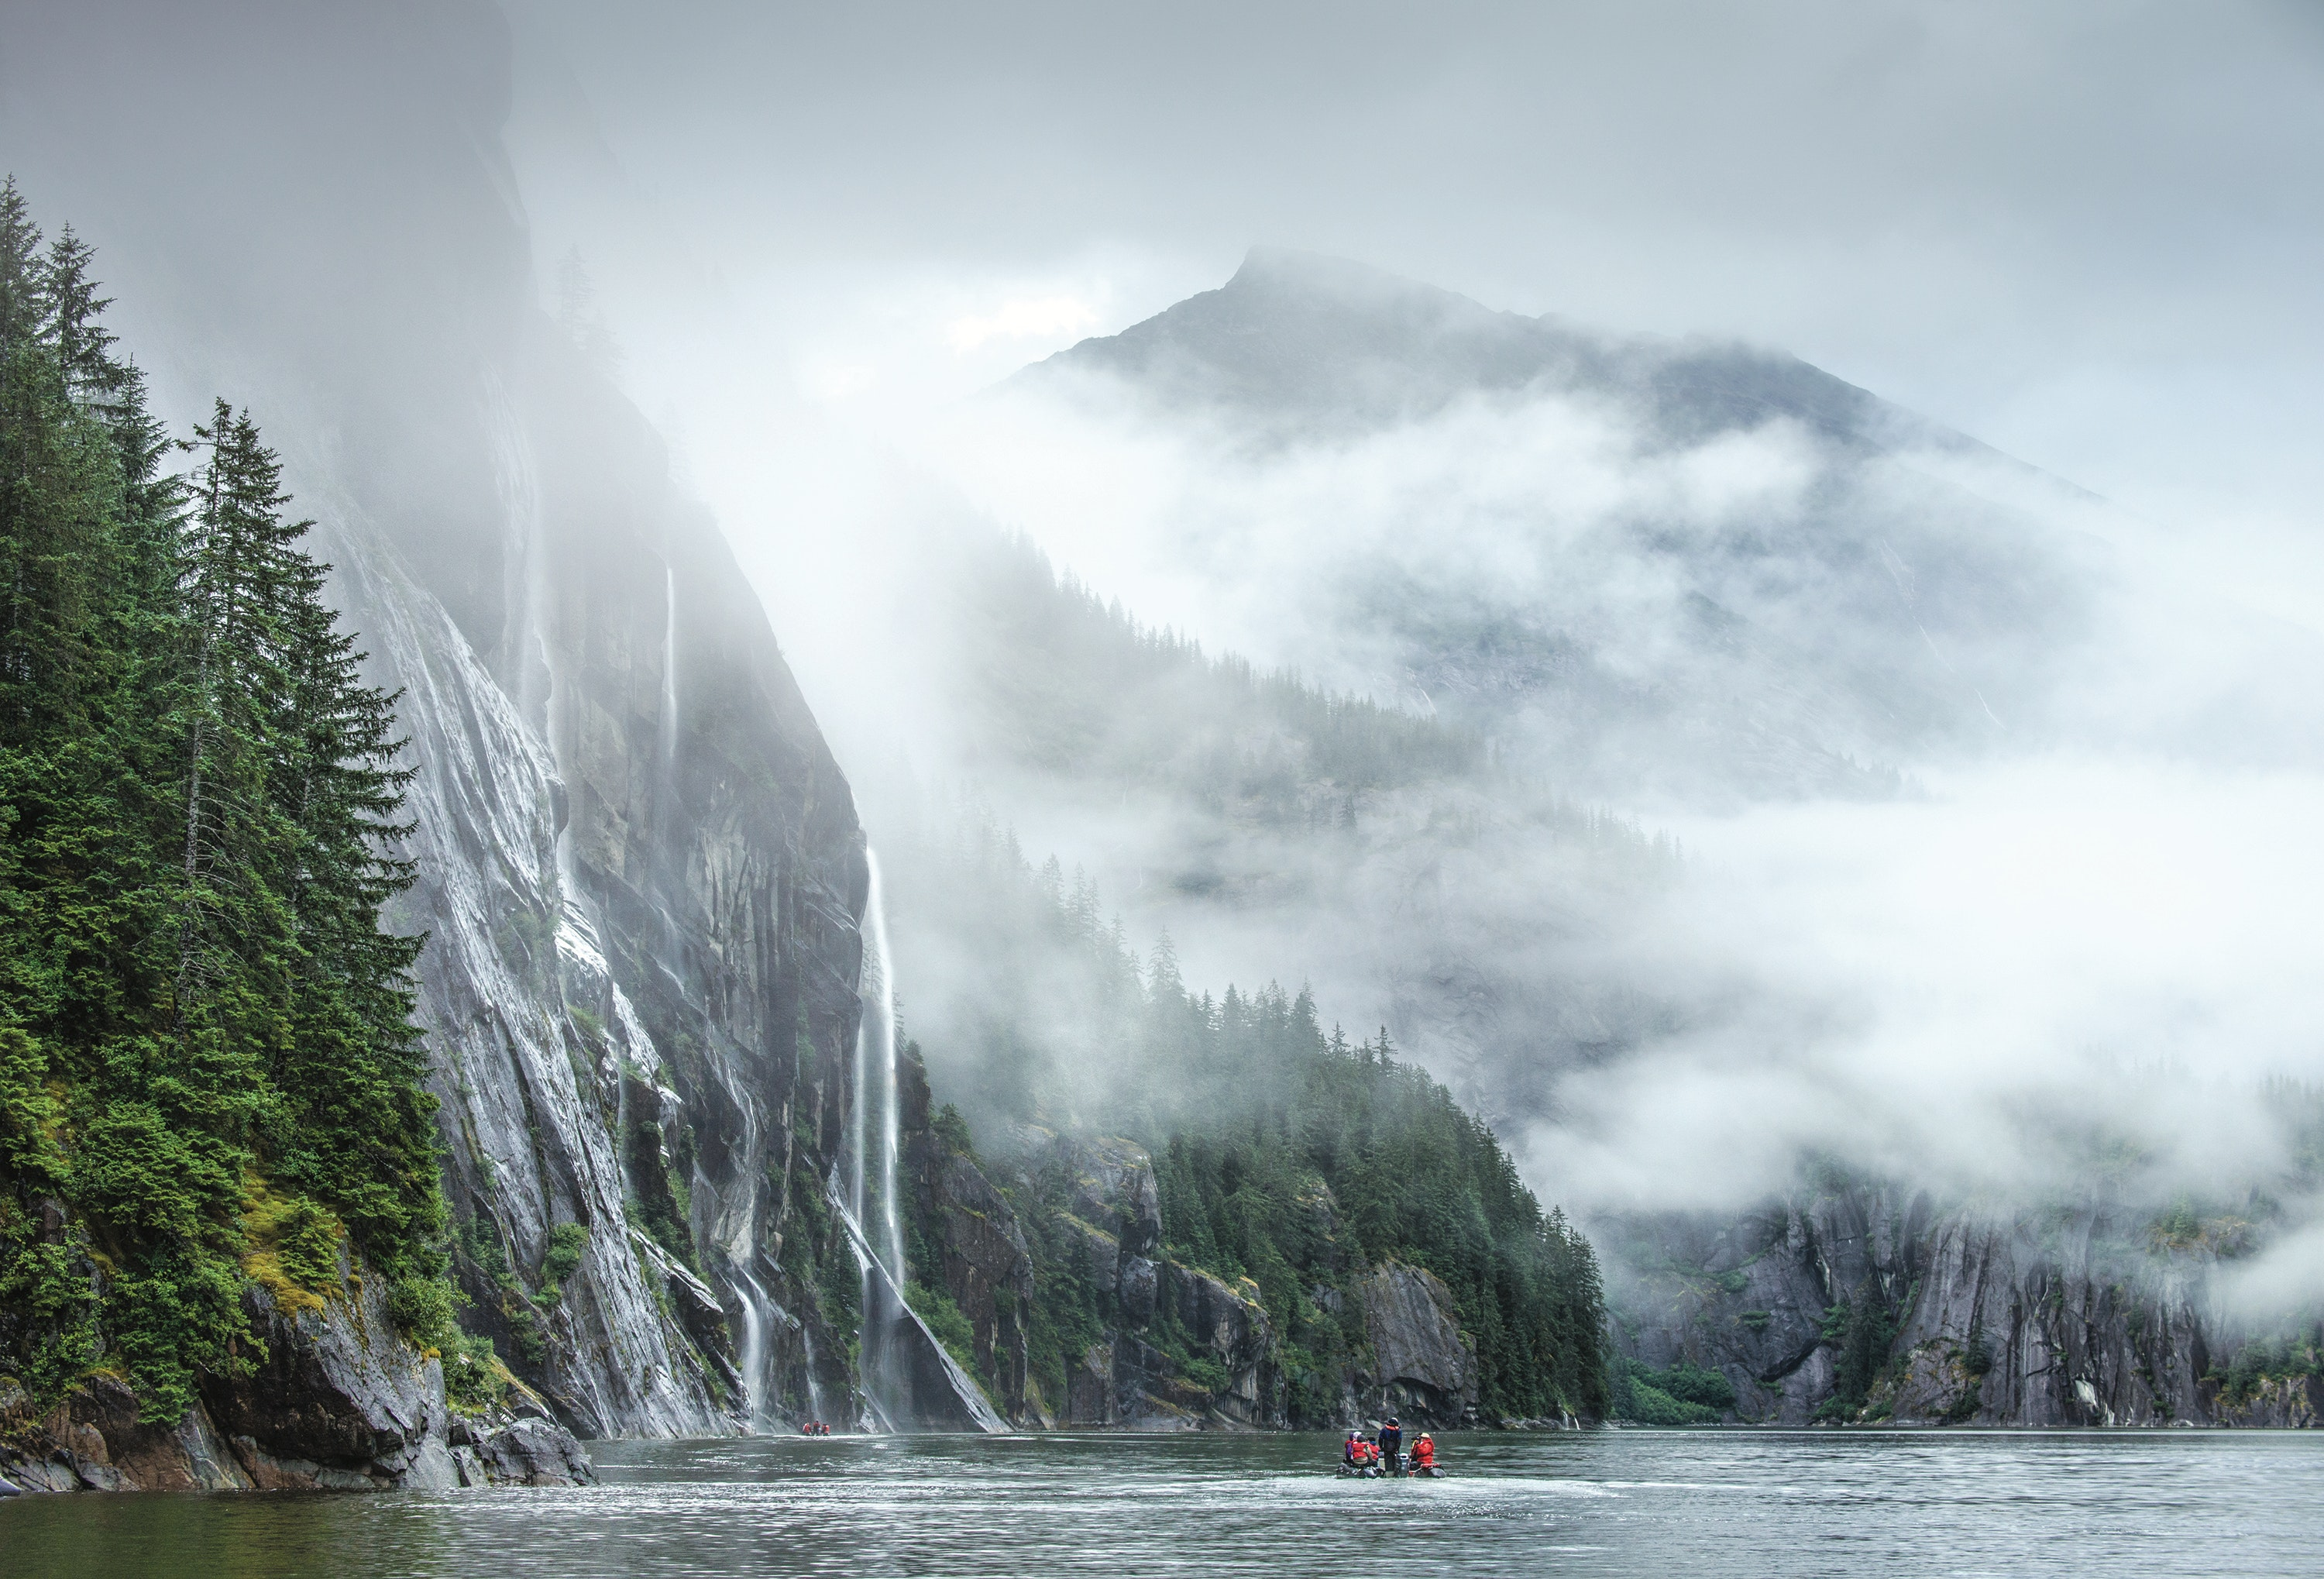 Lindblad Expeditions' newest ship sails to Alaska, where travelers can focus on wildlife and nature.